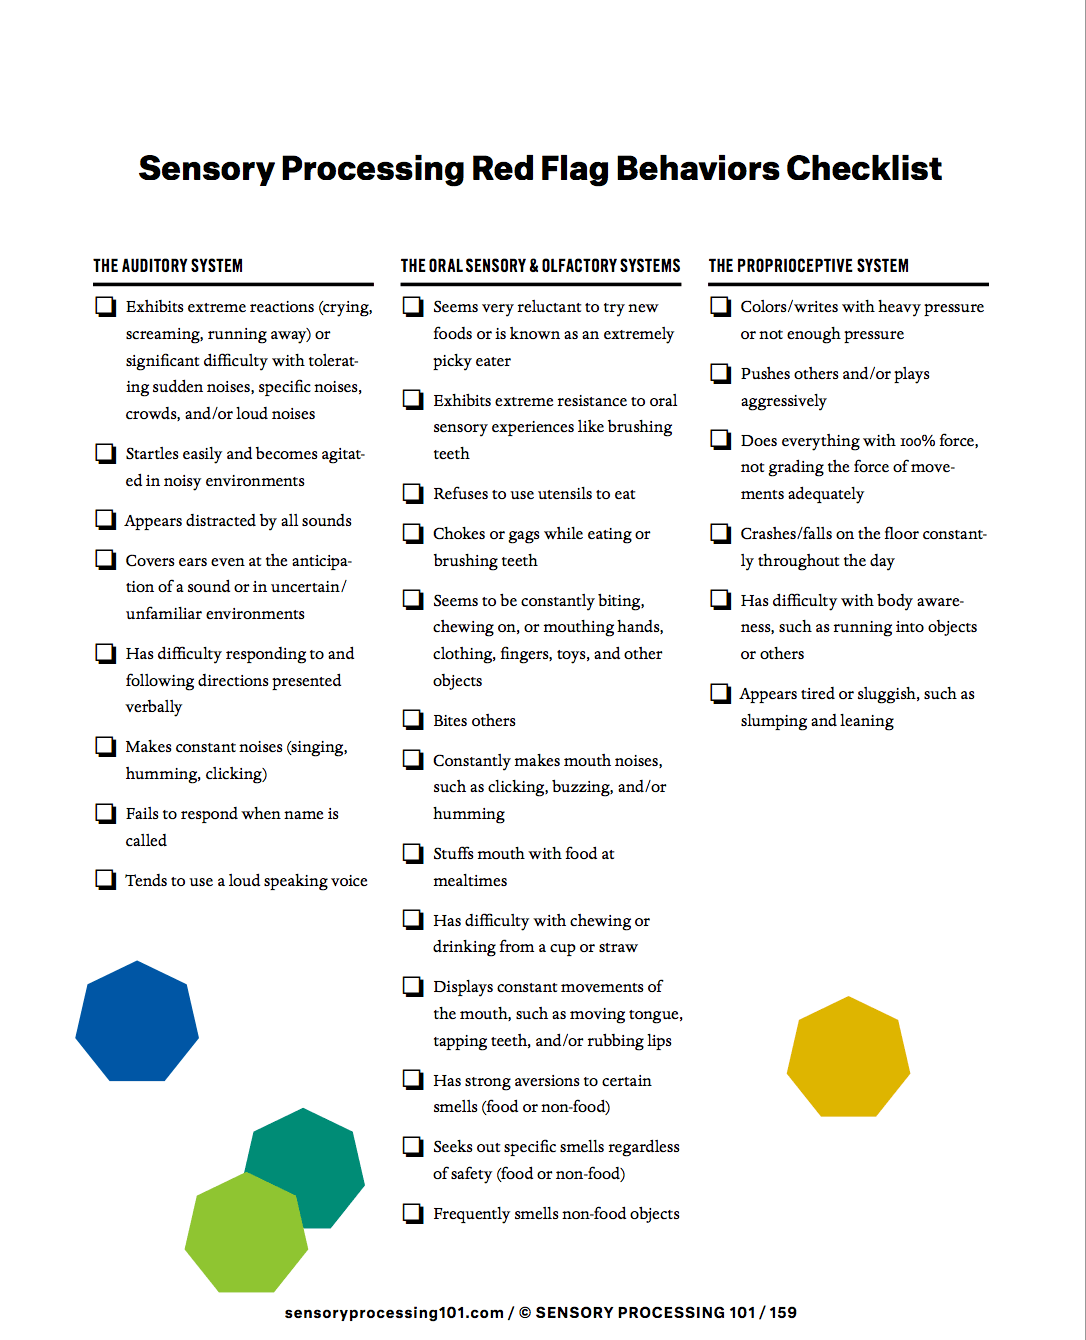 Sensory processing Red Flags Checklist